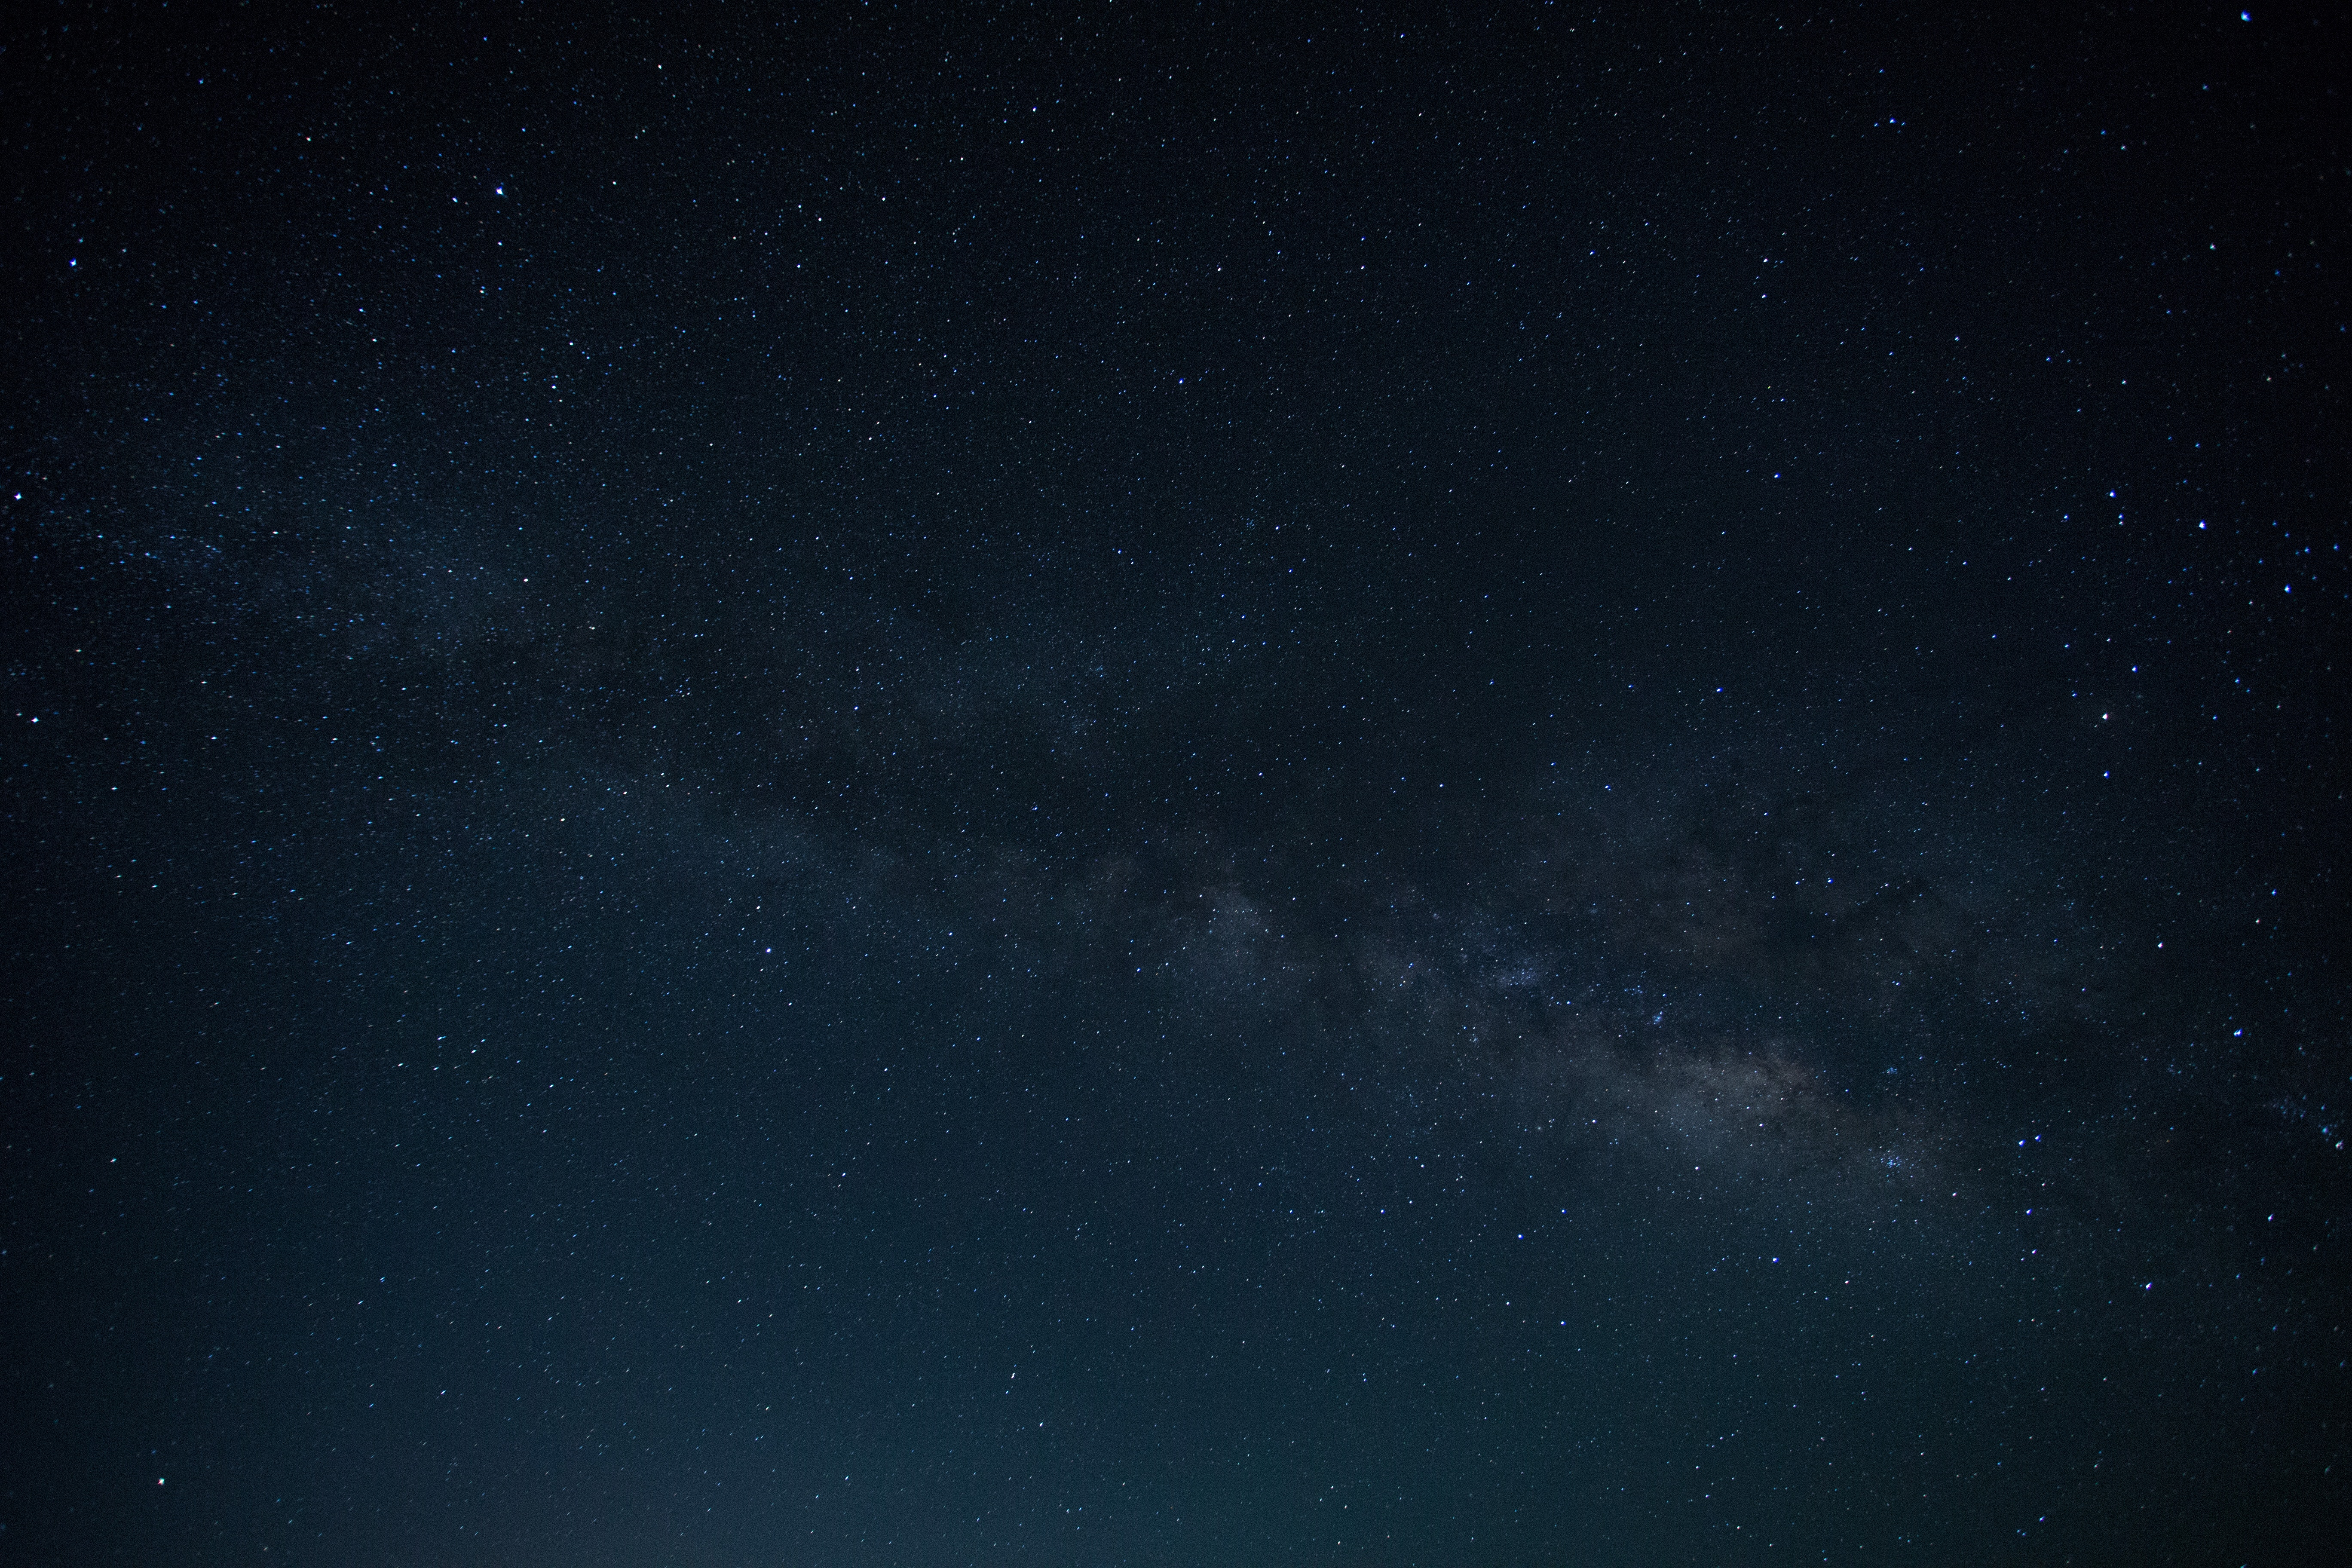 Stars during Night Time, Astronomy, Dark, Evening, Glowing, HQ Photo